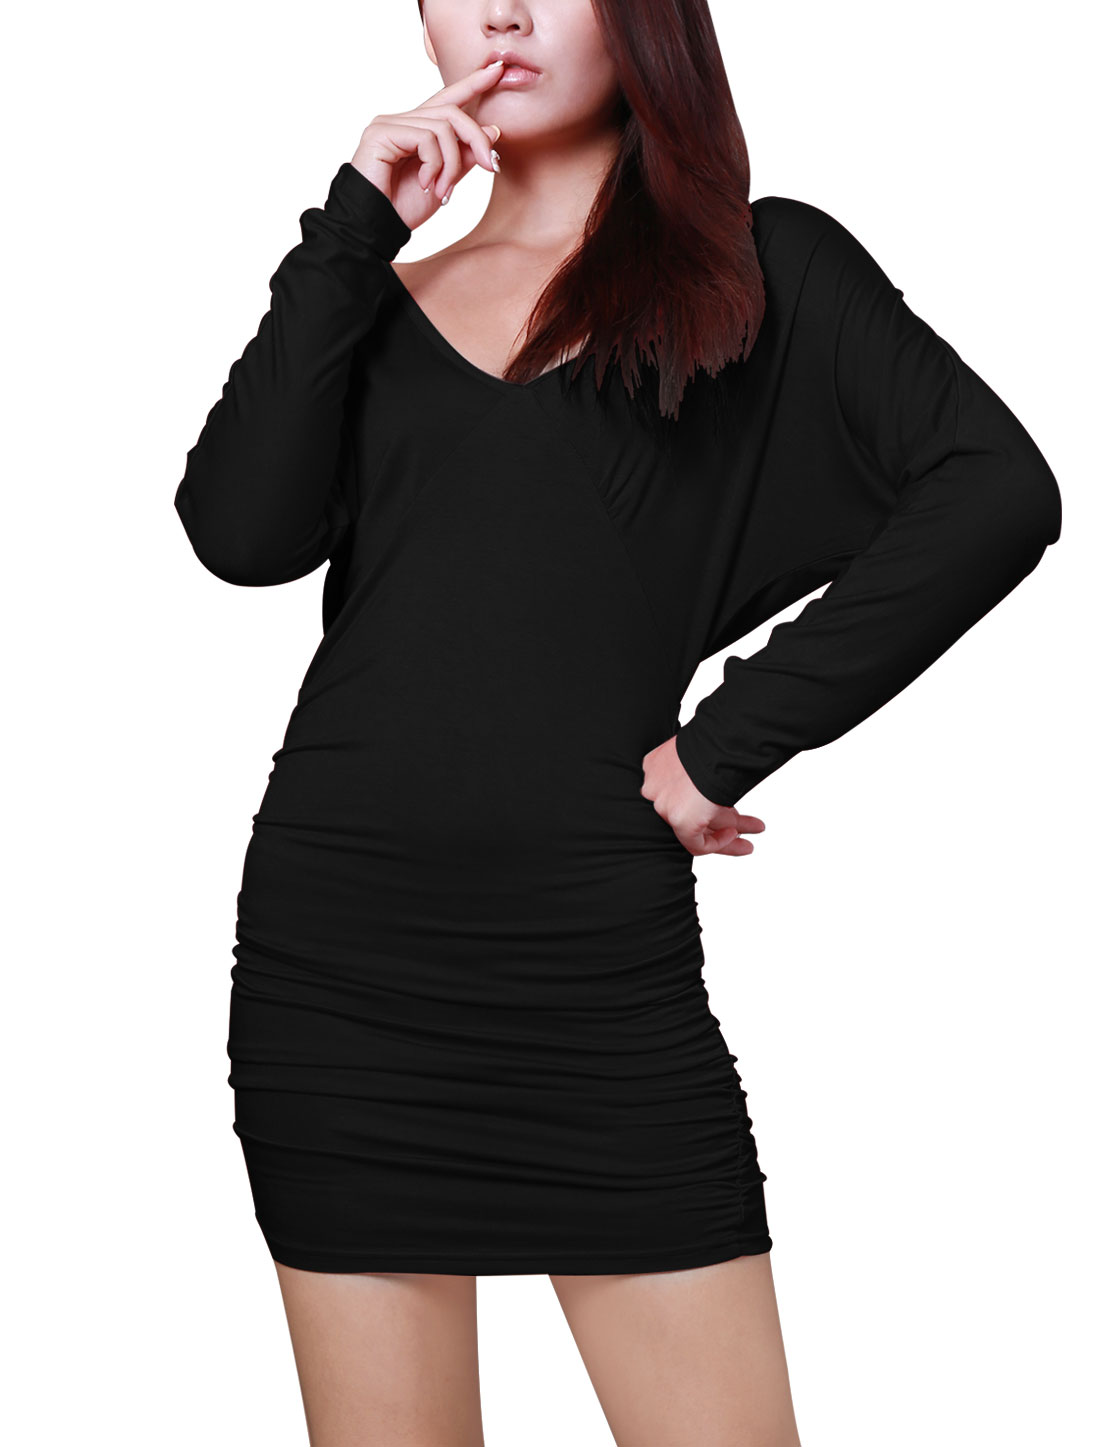 NEW Fashion Pure Black Deep V Neck Slim Fit Mini Dress for Lady M